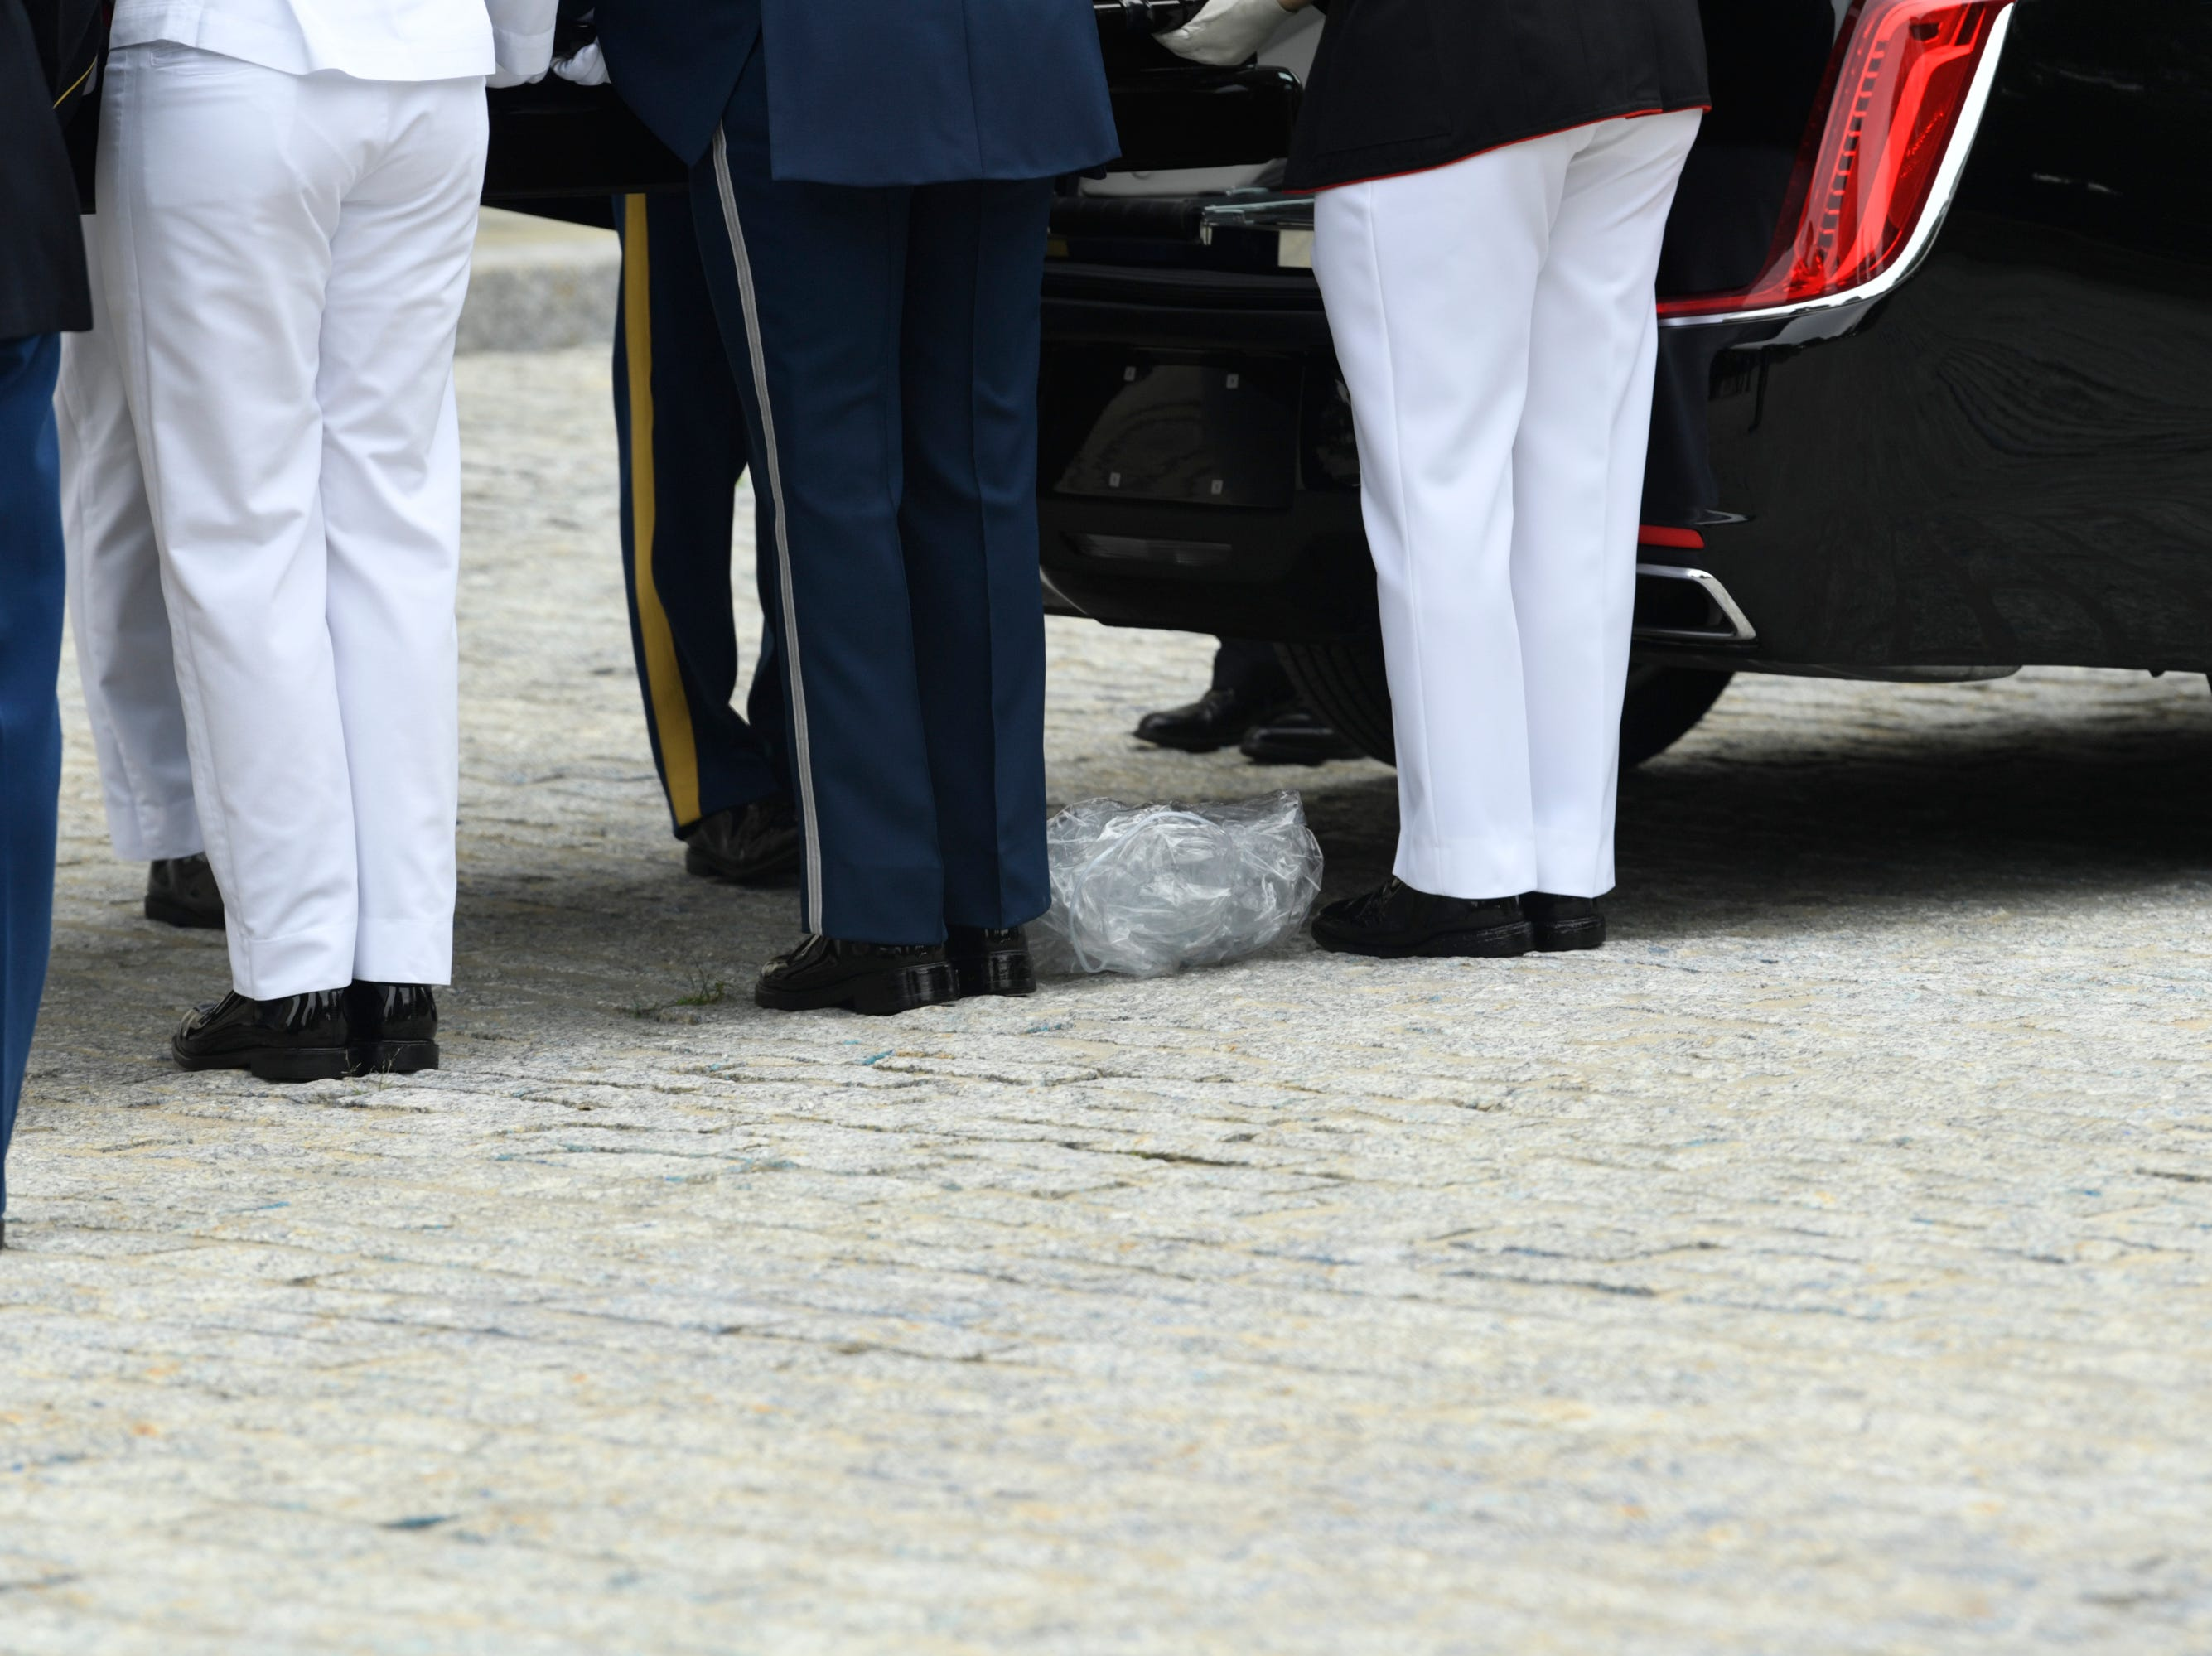 9/1/18 9:43:14 AM -- Washington, DC, U.S.A  -- A piece of plastic falls to the ground as the flag-draped casket bearing John McCain is carried into the National Cathedral in Washington for a memorial service on Sept. 1, 2018. Sen. McCain died on Aug. 25. --    Photo by Jasper Colt, USA TODAY Staff